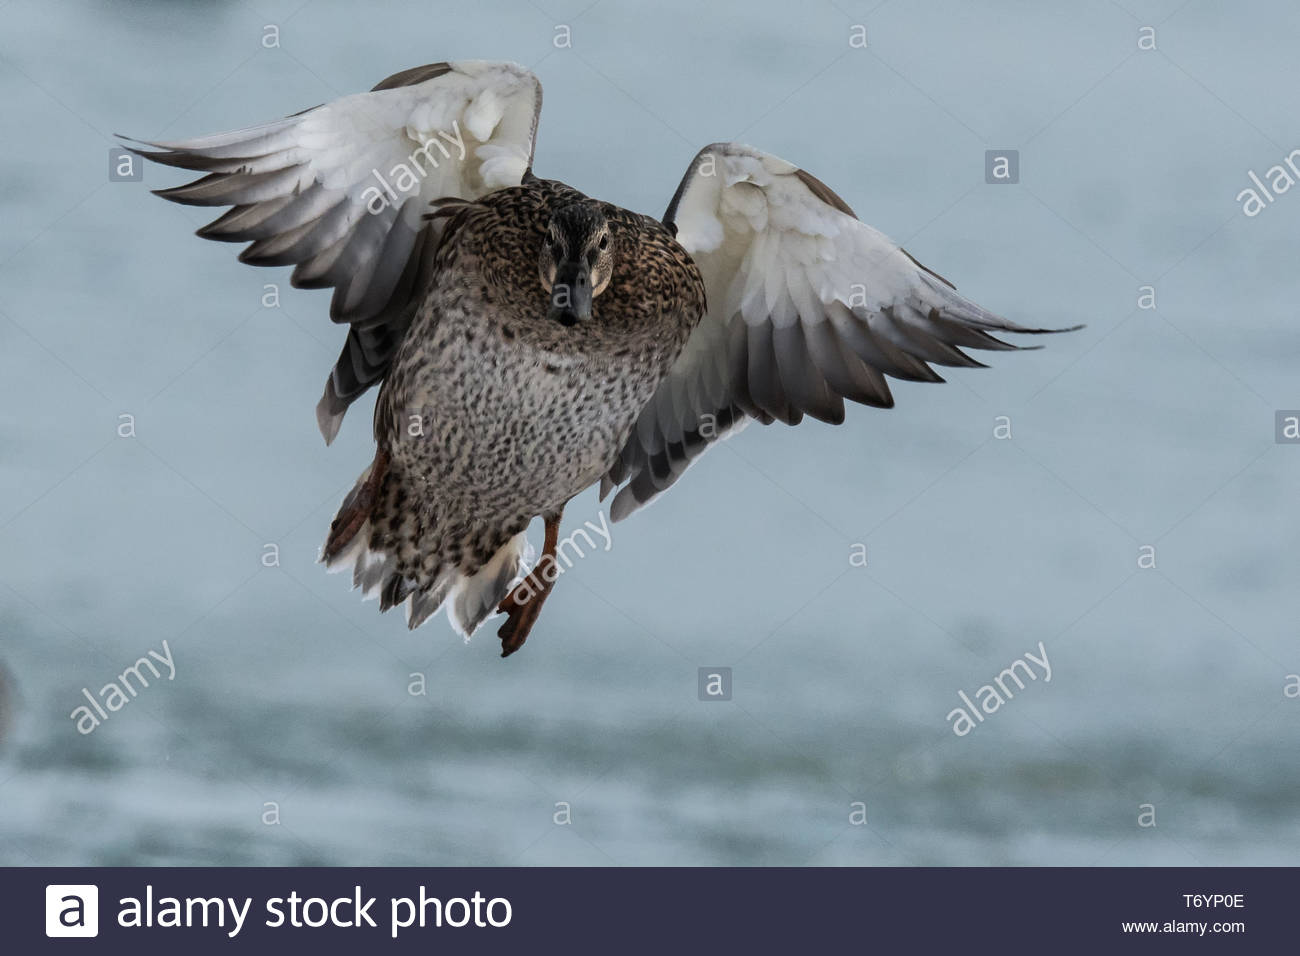 Mallard duck flying in to land with wings outstretched Peterborough Ontario Canada - Stock Image